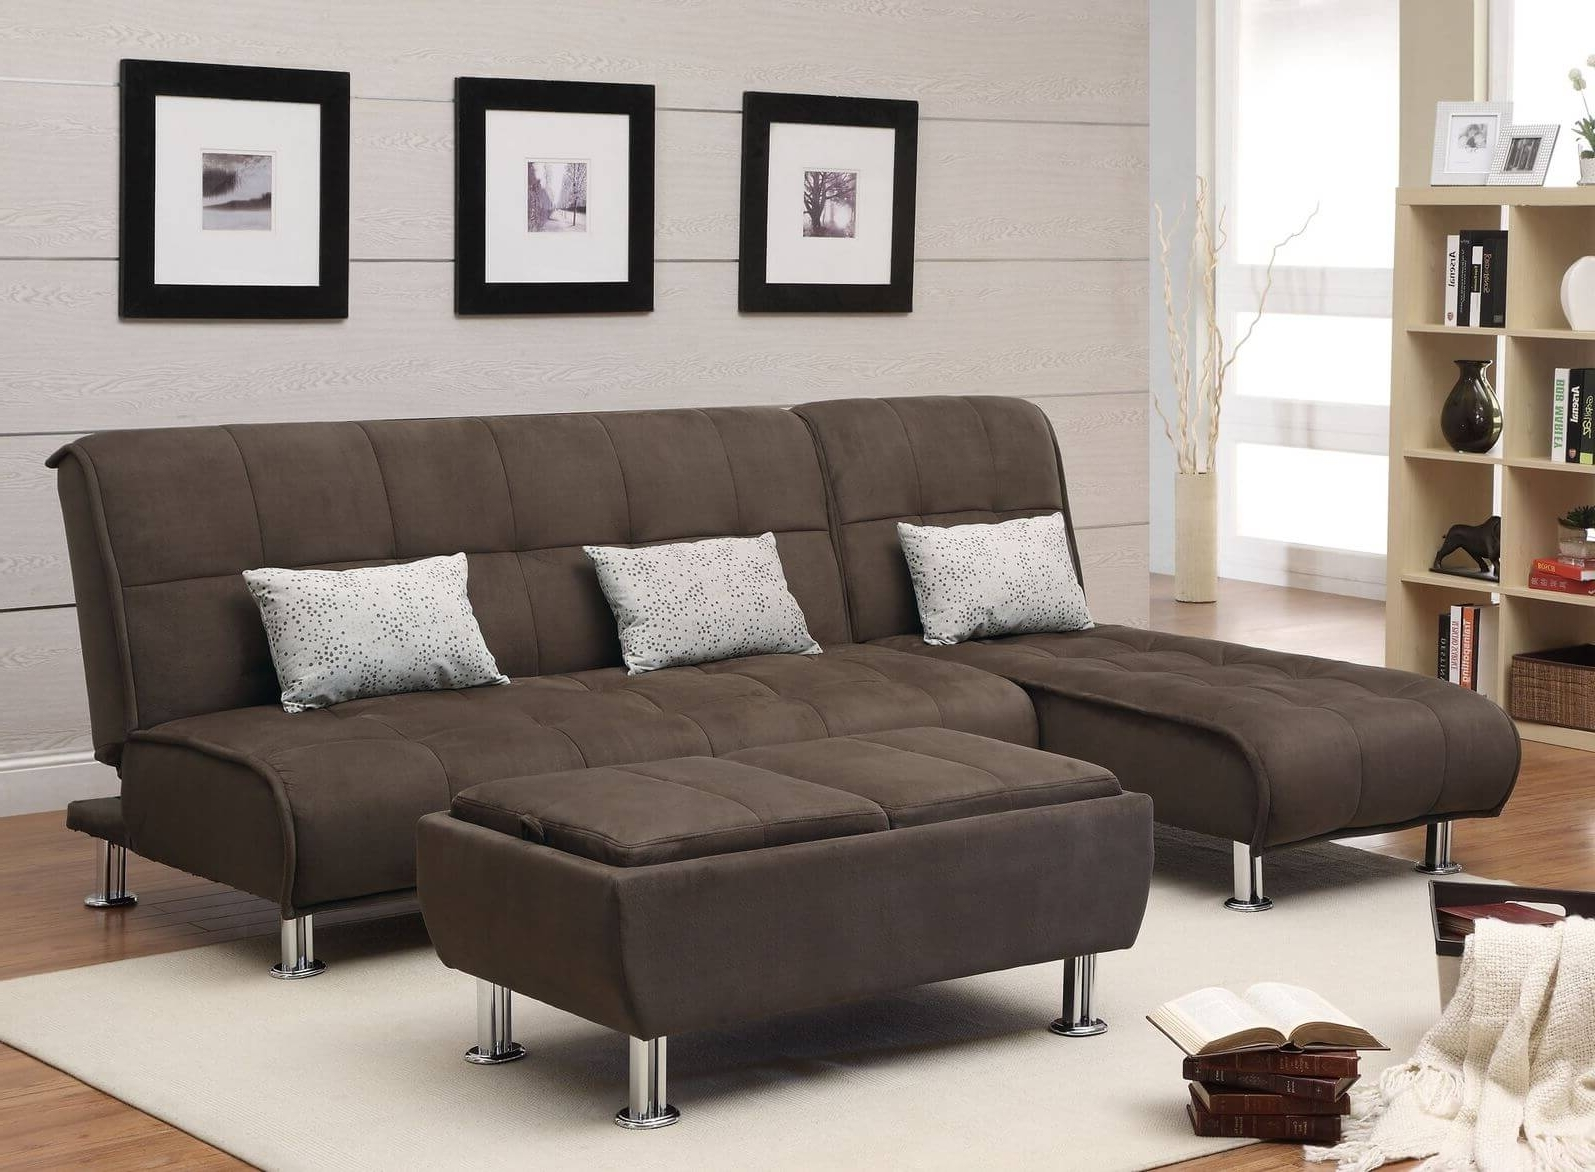 2019 Furniture : Ethan Allen Wood Sofa Chaise Lounge Furniture Indoor With Quad Cities Sectional Sofas (View 2 of 20)